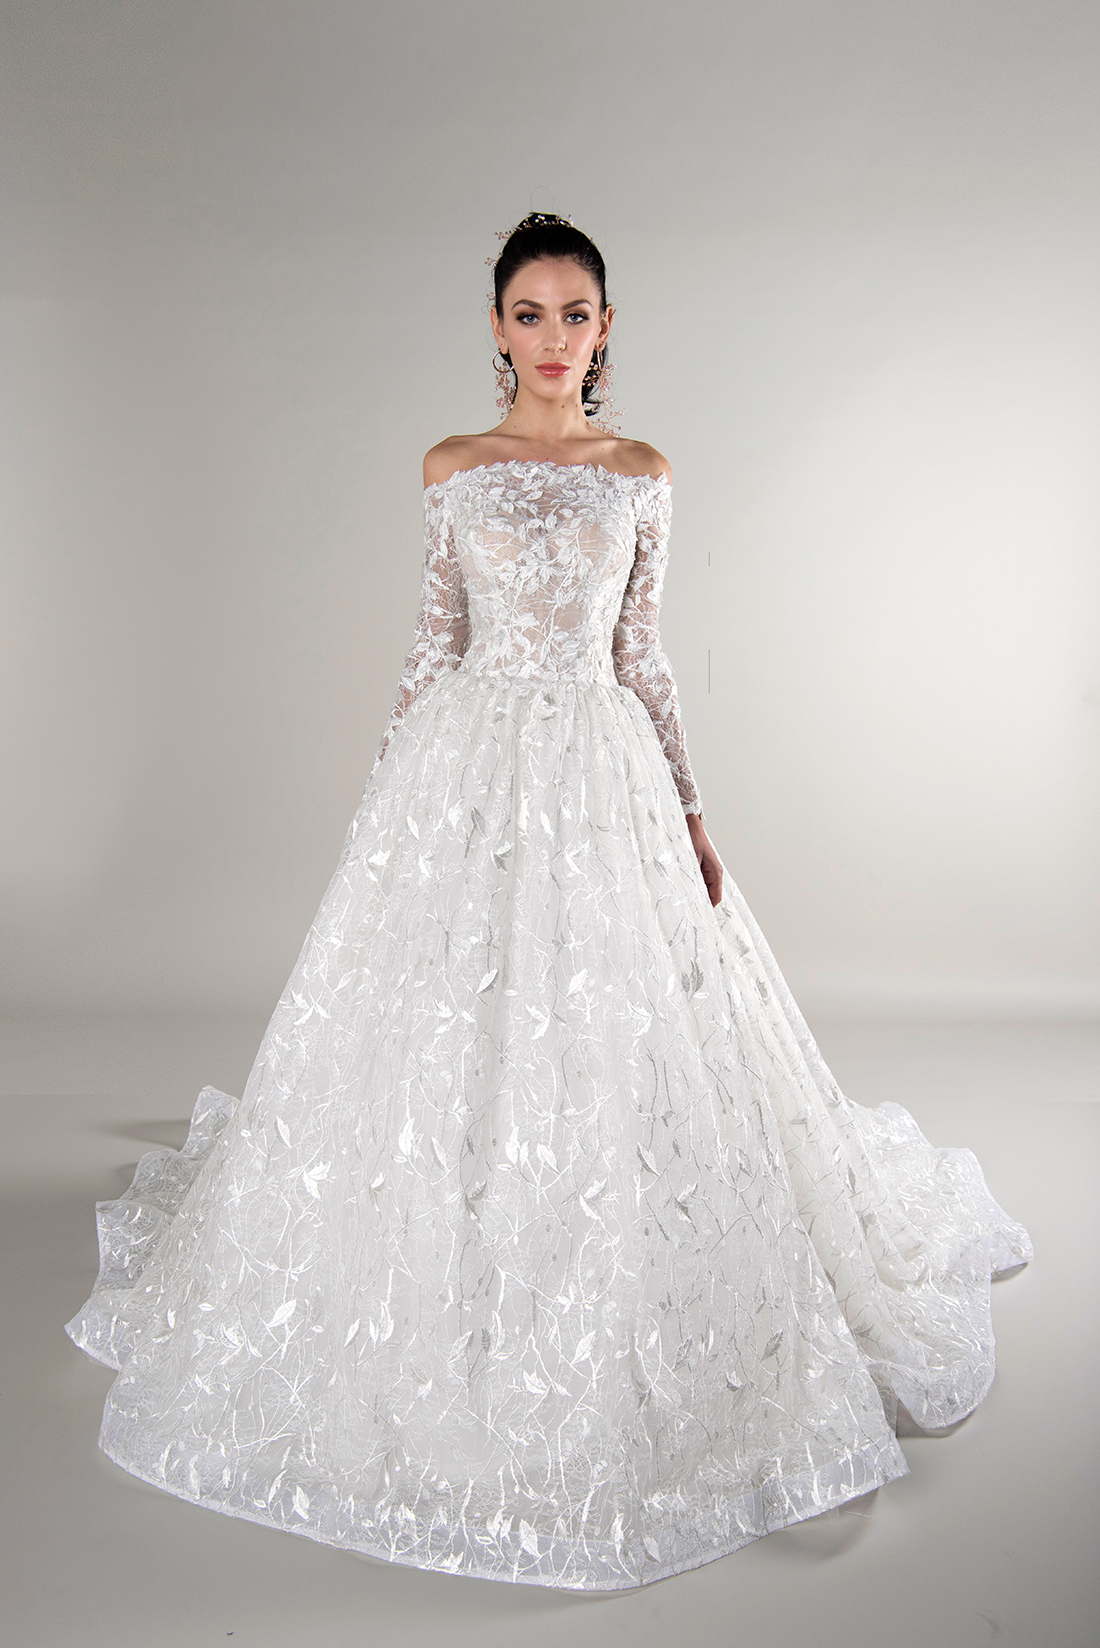 yumi katsura fall 2019 ball gown off the shoulder long sleeve sheer floral applique lace